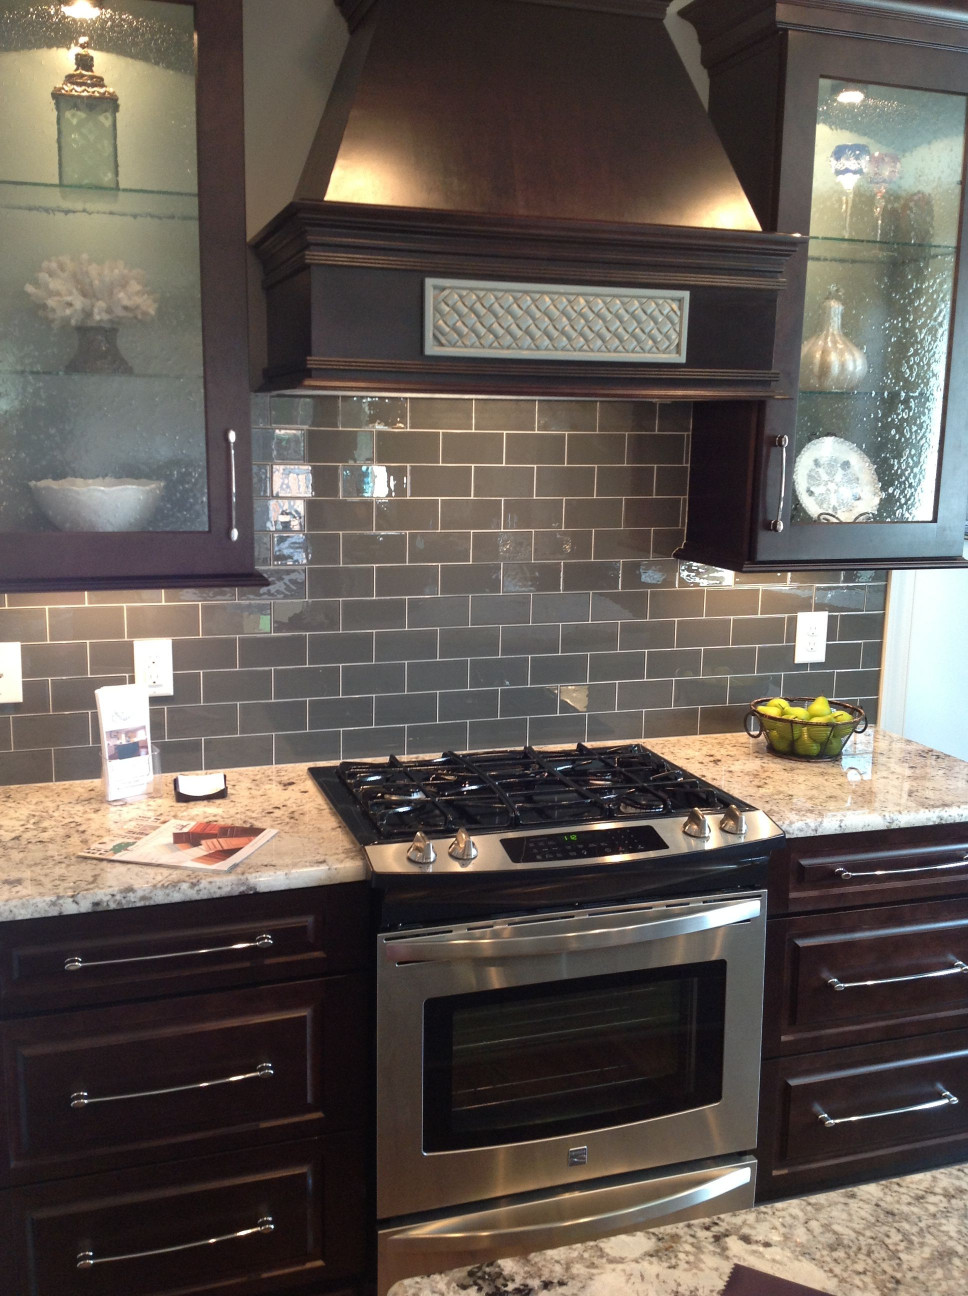 Kitchen Backsplash Ideas For Dark Cabinets  Ice Gray Glass Subway Tile H O M E D E C O R